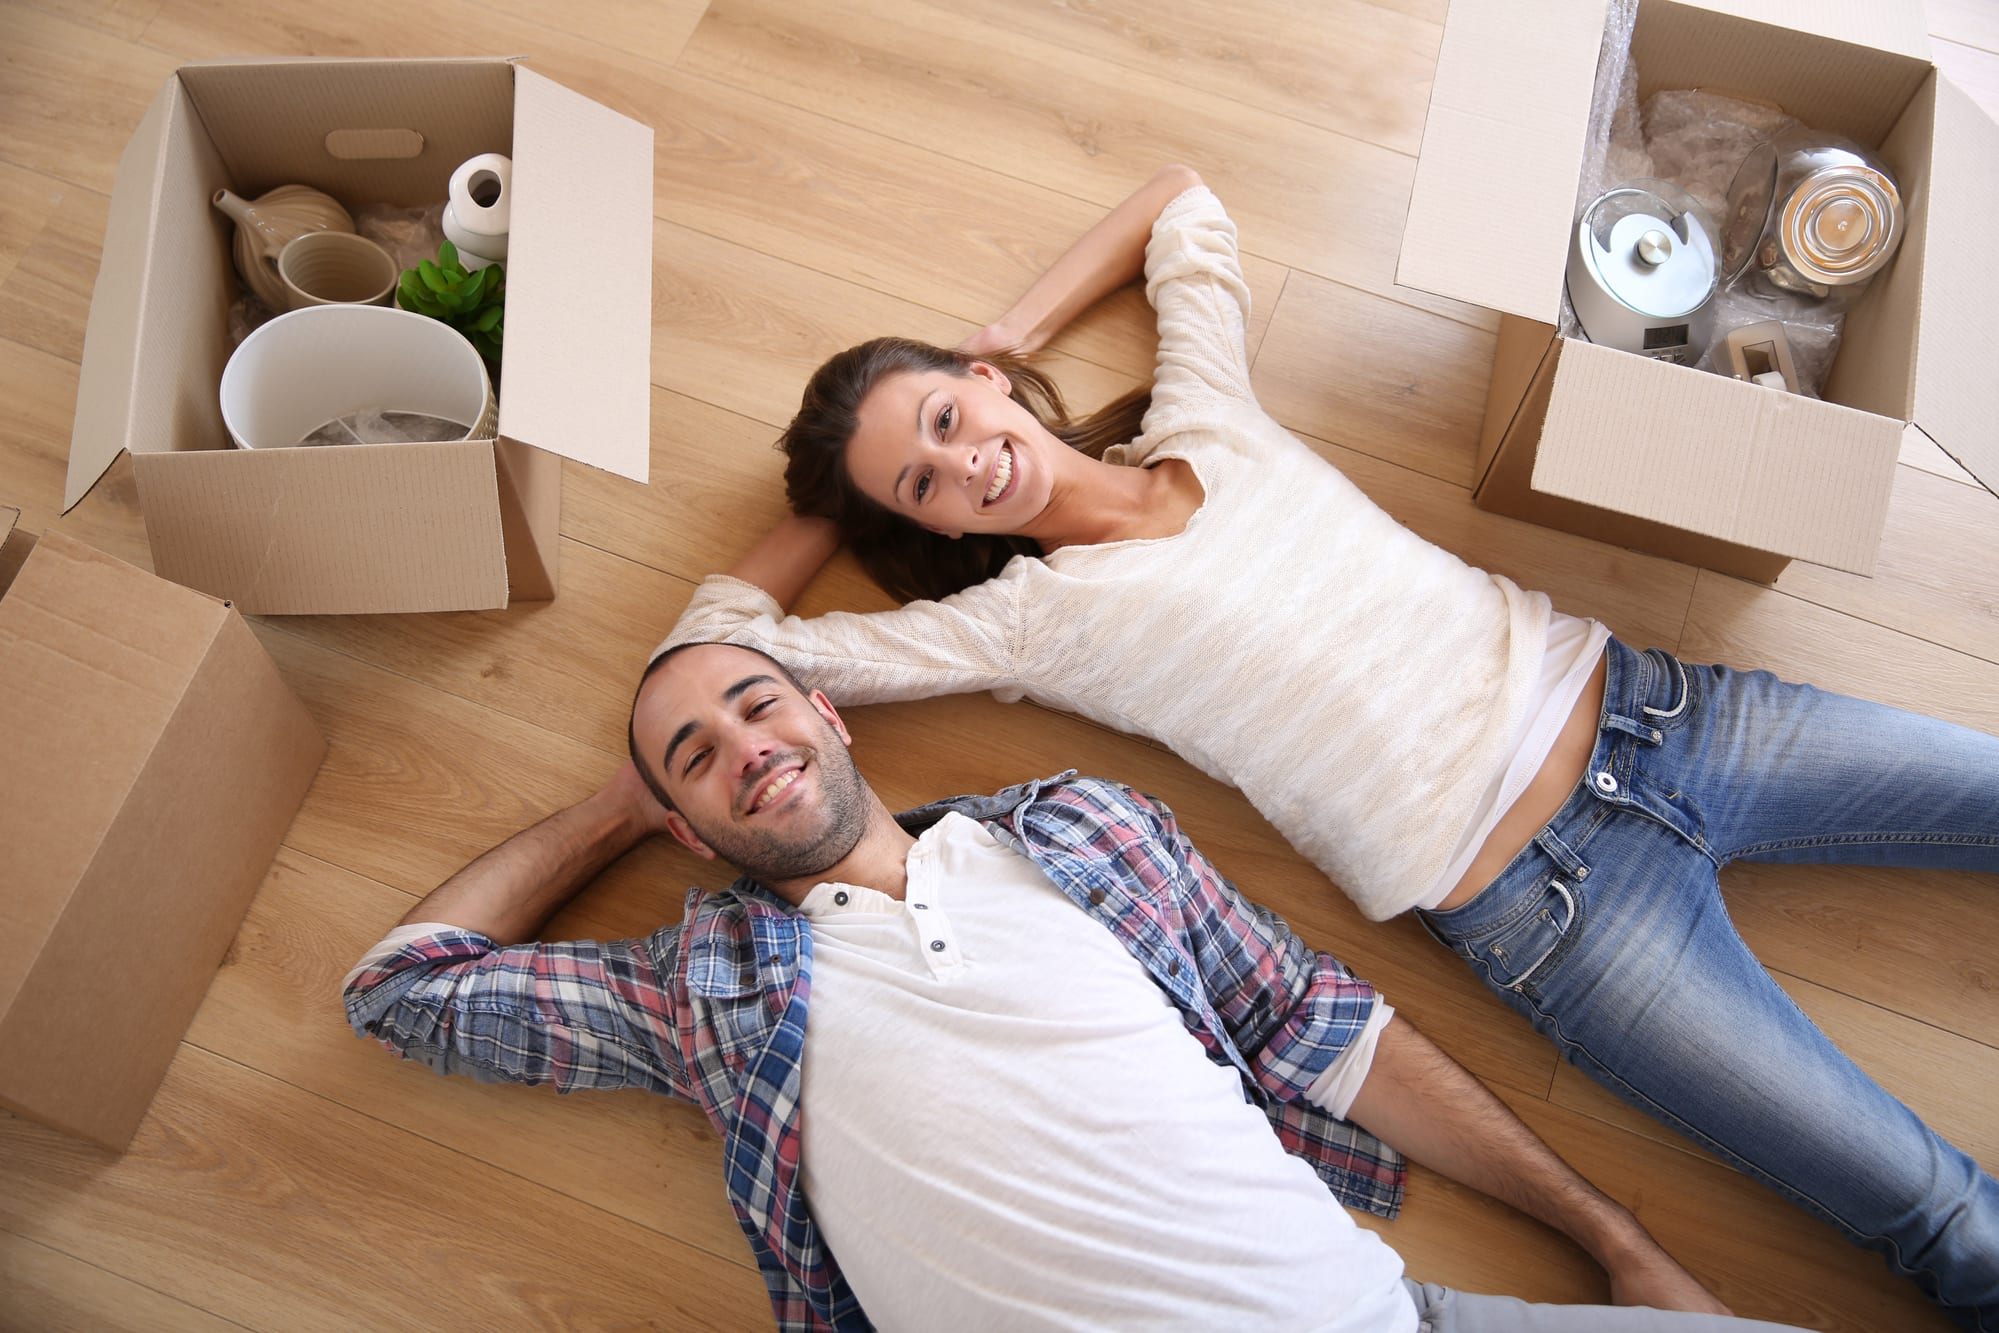 Young, smiling couple lying on floor at home by moving boxes